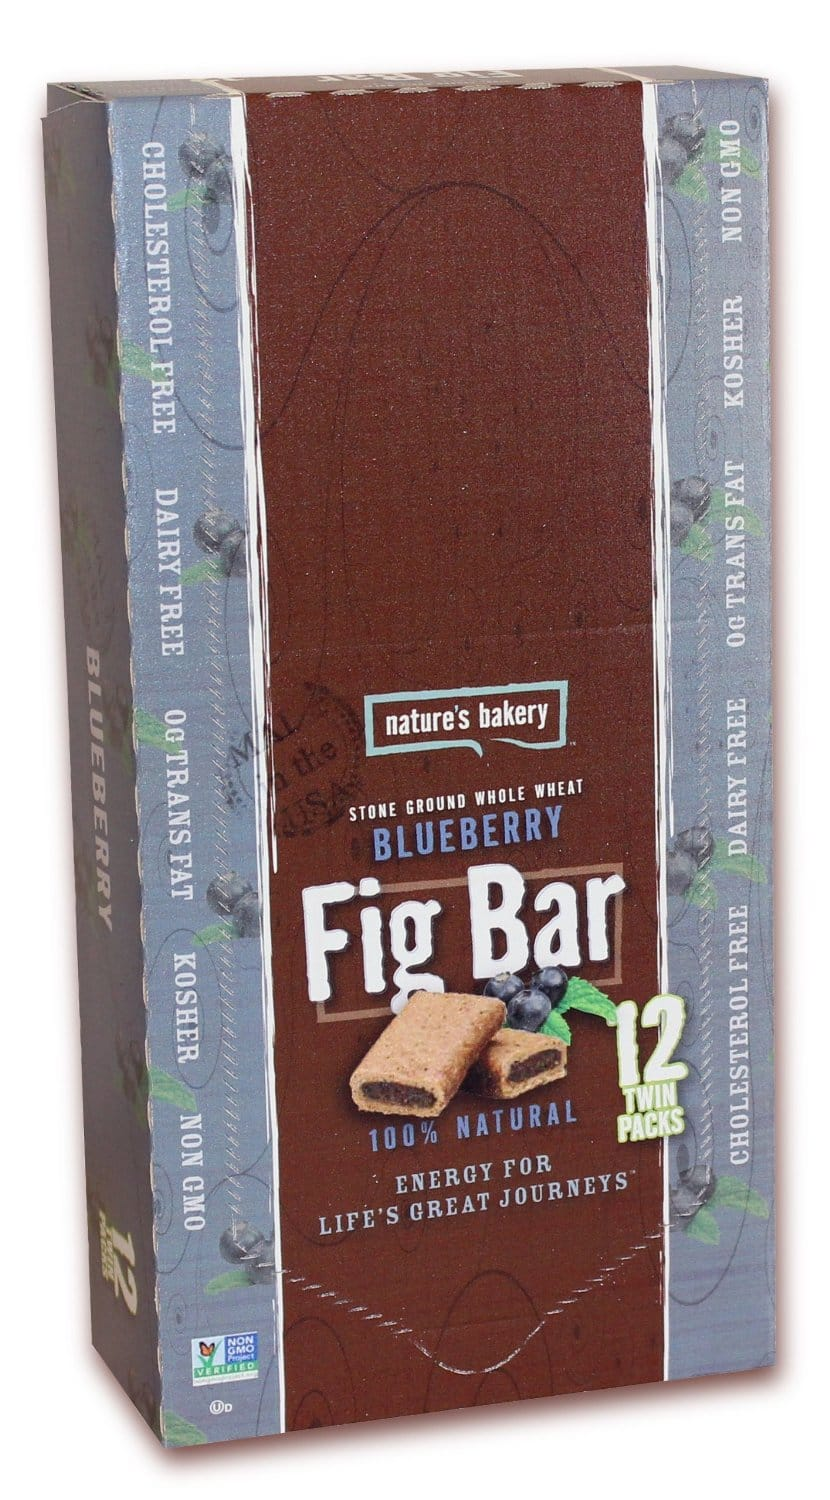 12-Count Twin Packs Nature's Bakery Fig Bars (Blueberry)  $5.55 & More